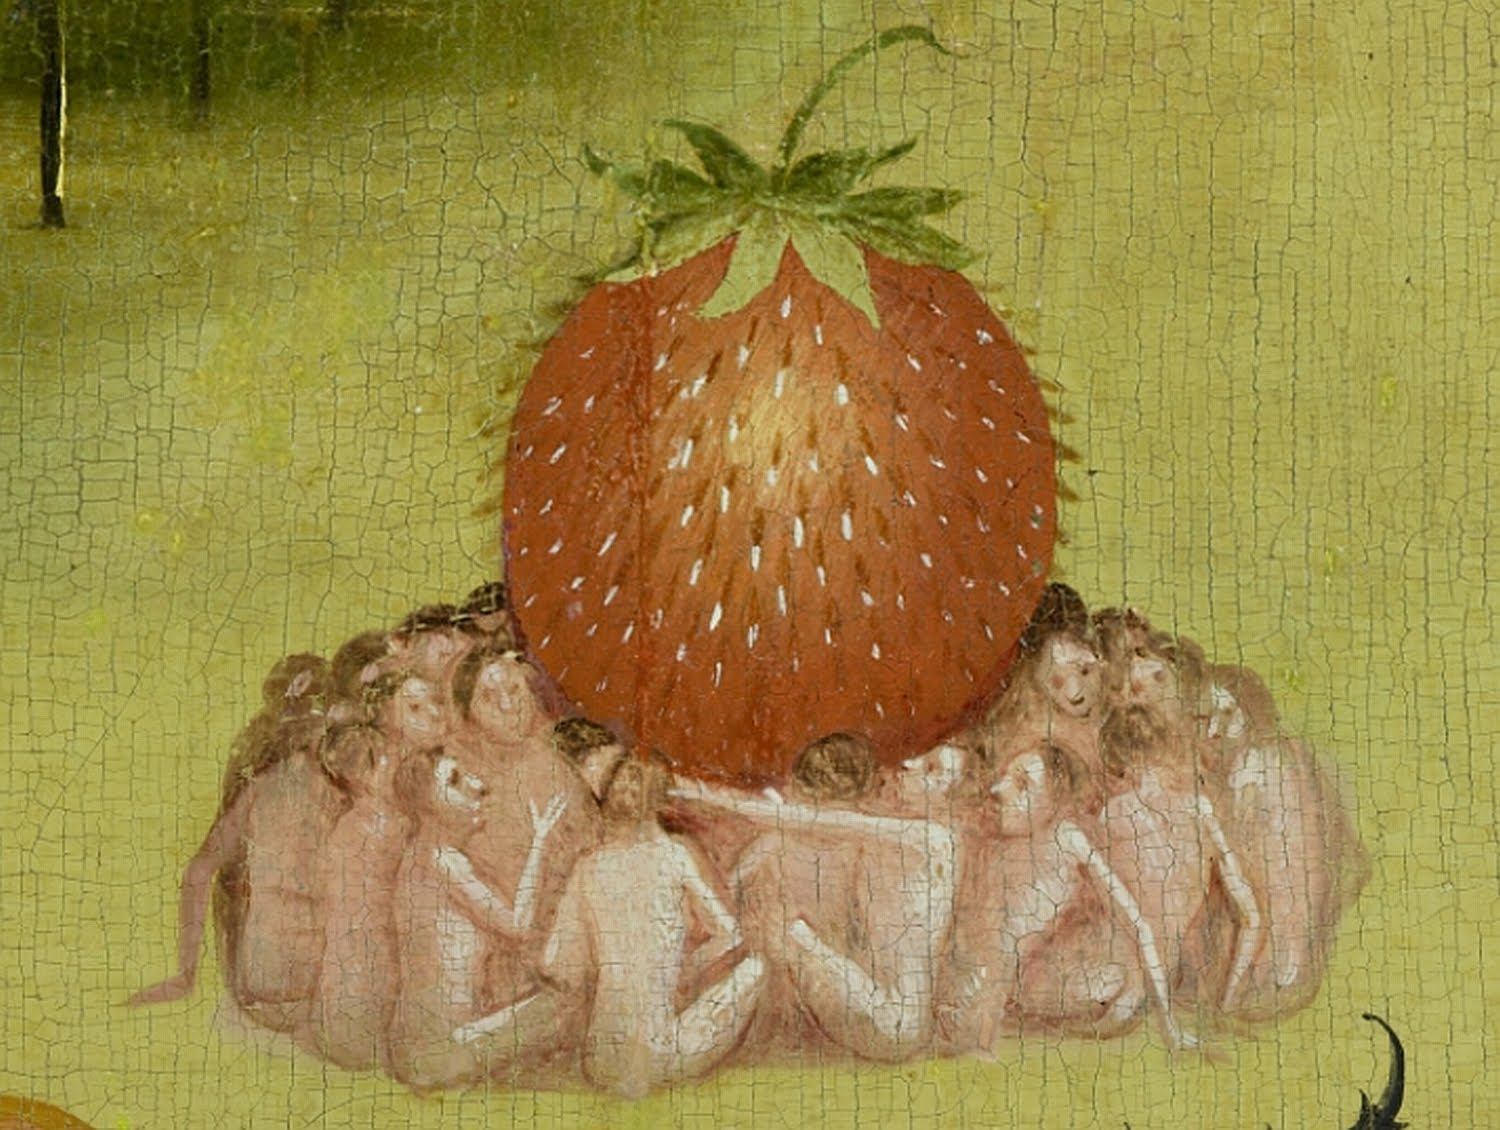 bosch hieronymus detail strawberry2